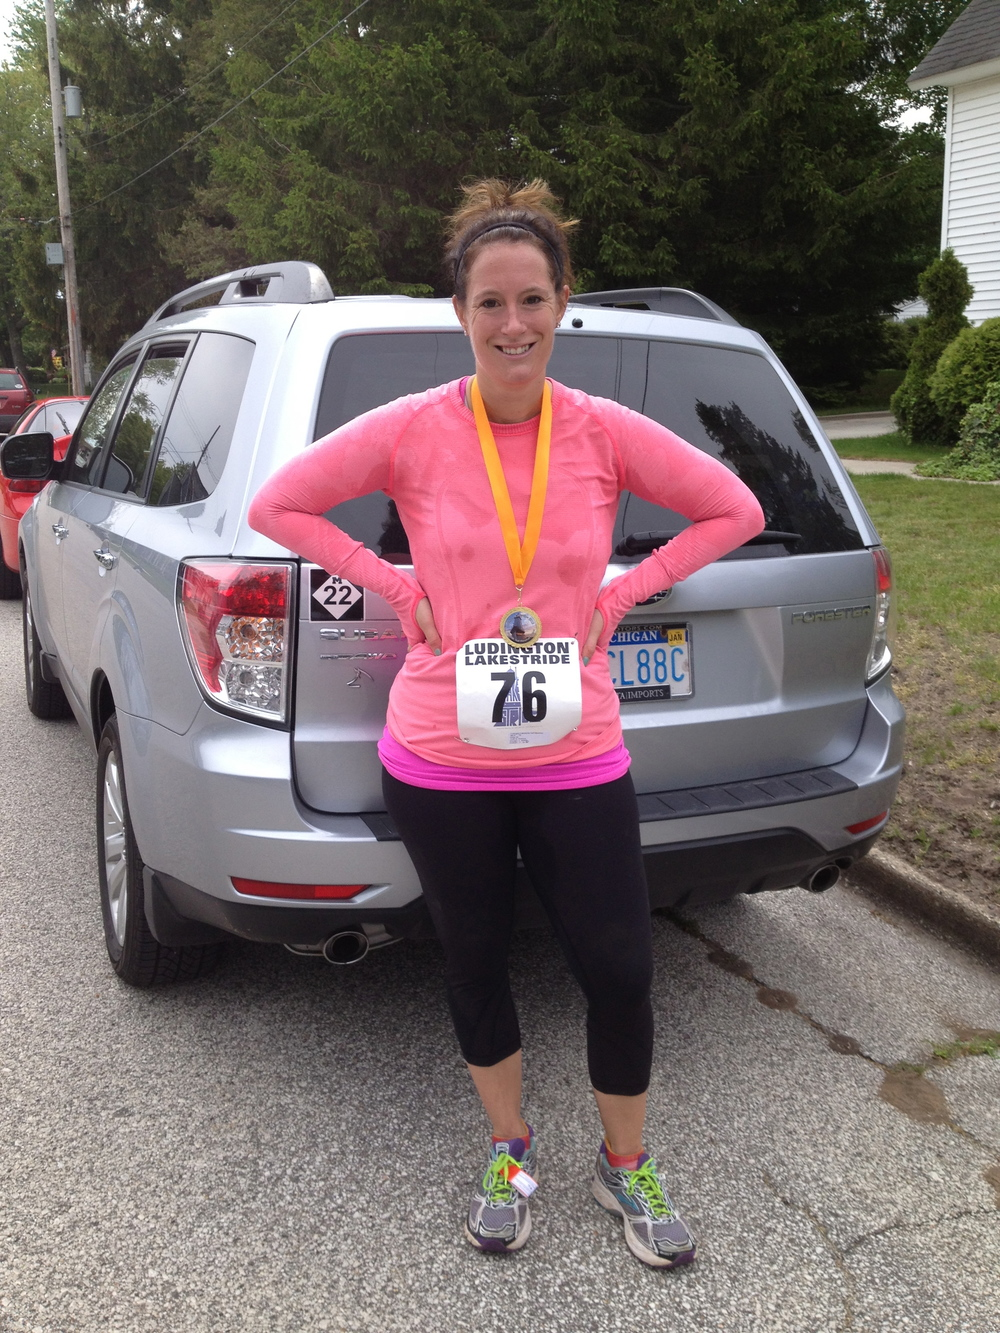 Immediately after finishing the Ludington Lakestride Half Marathon this June, a race I've run 5 times now and love more and more each time I run it.  Photo credit: my mom.